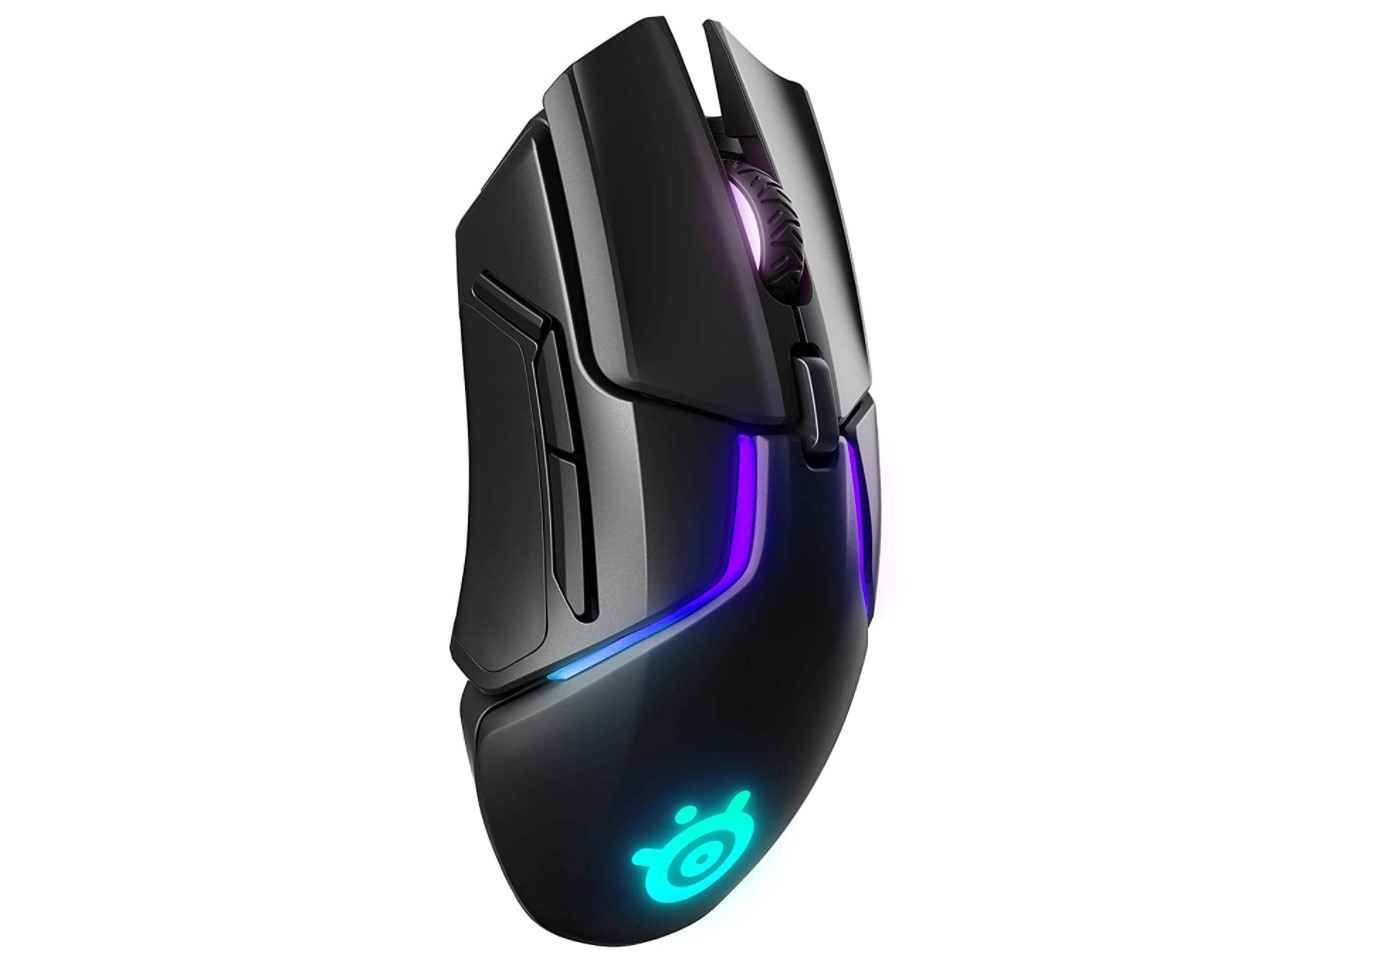 chuột chơi game Steelseries 650